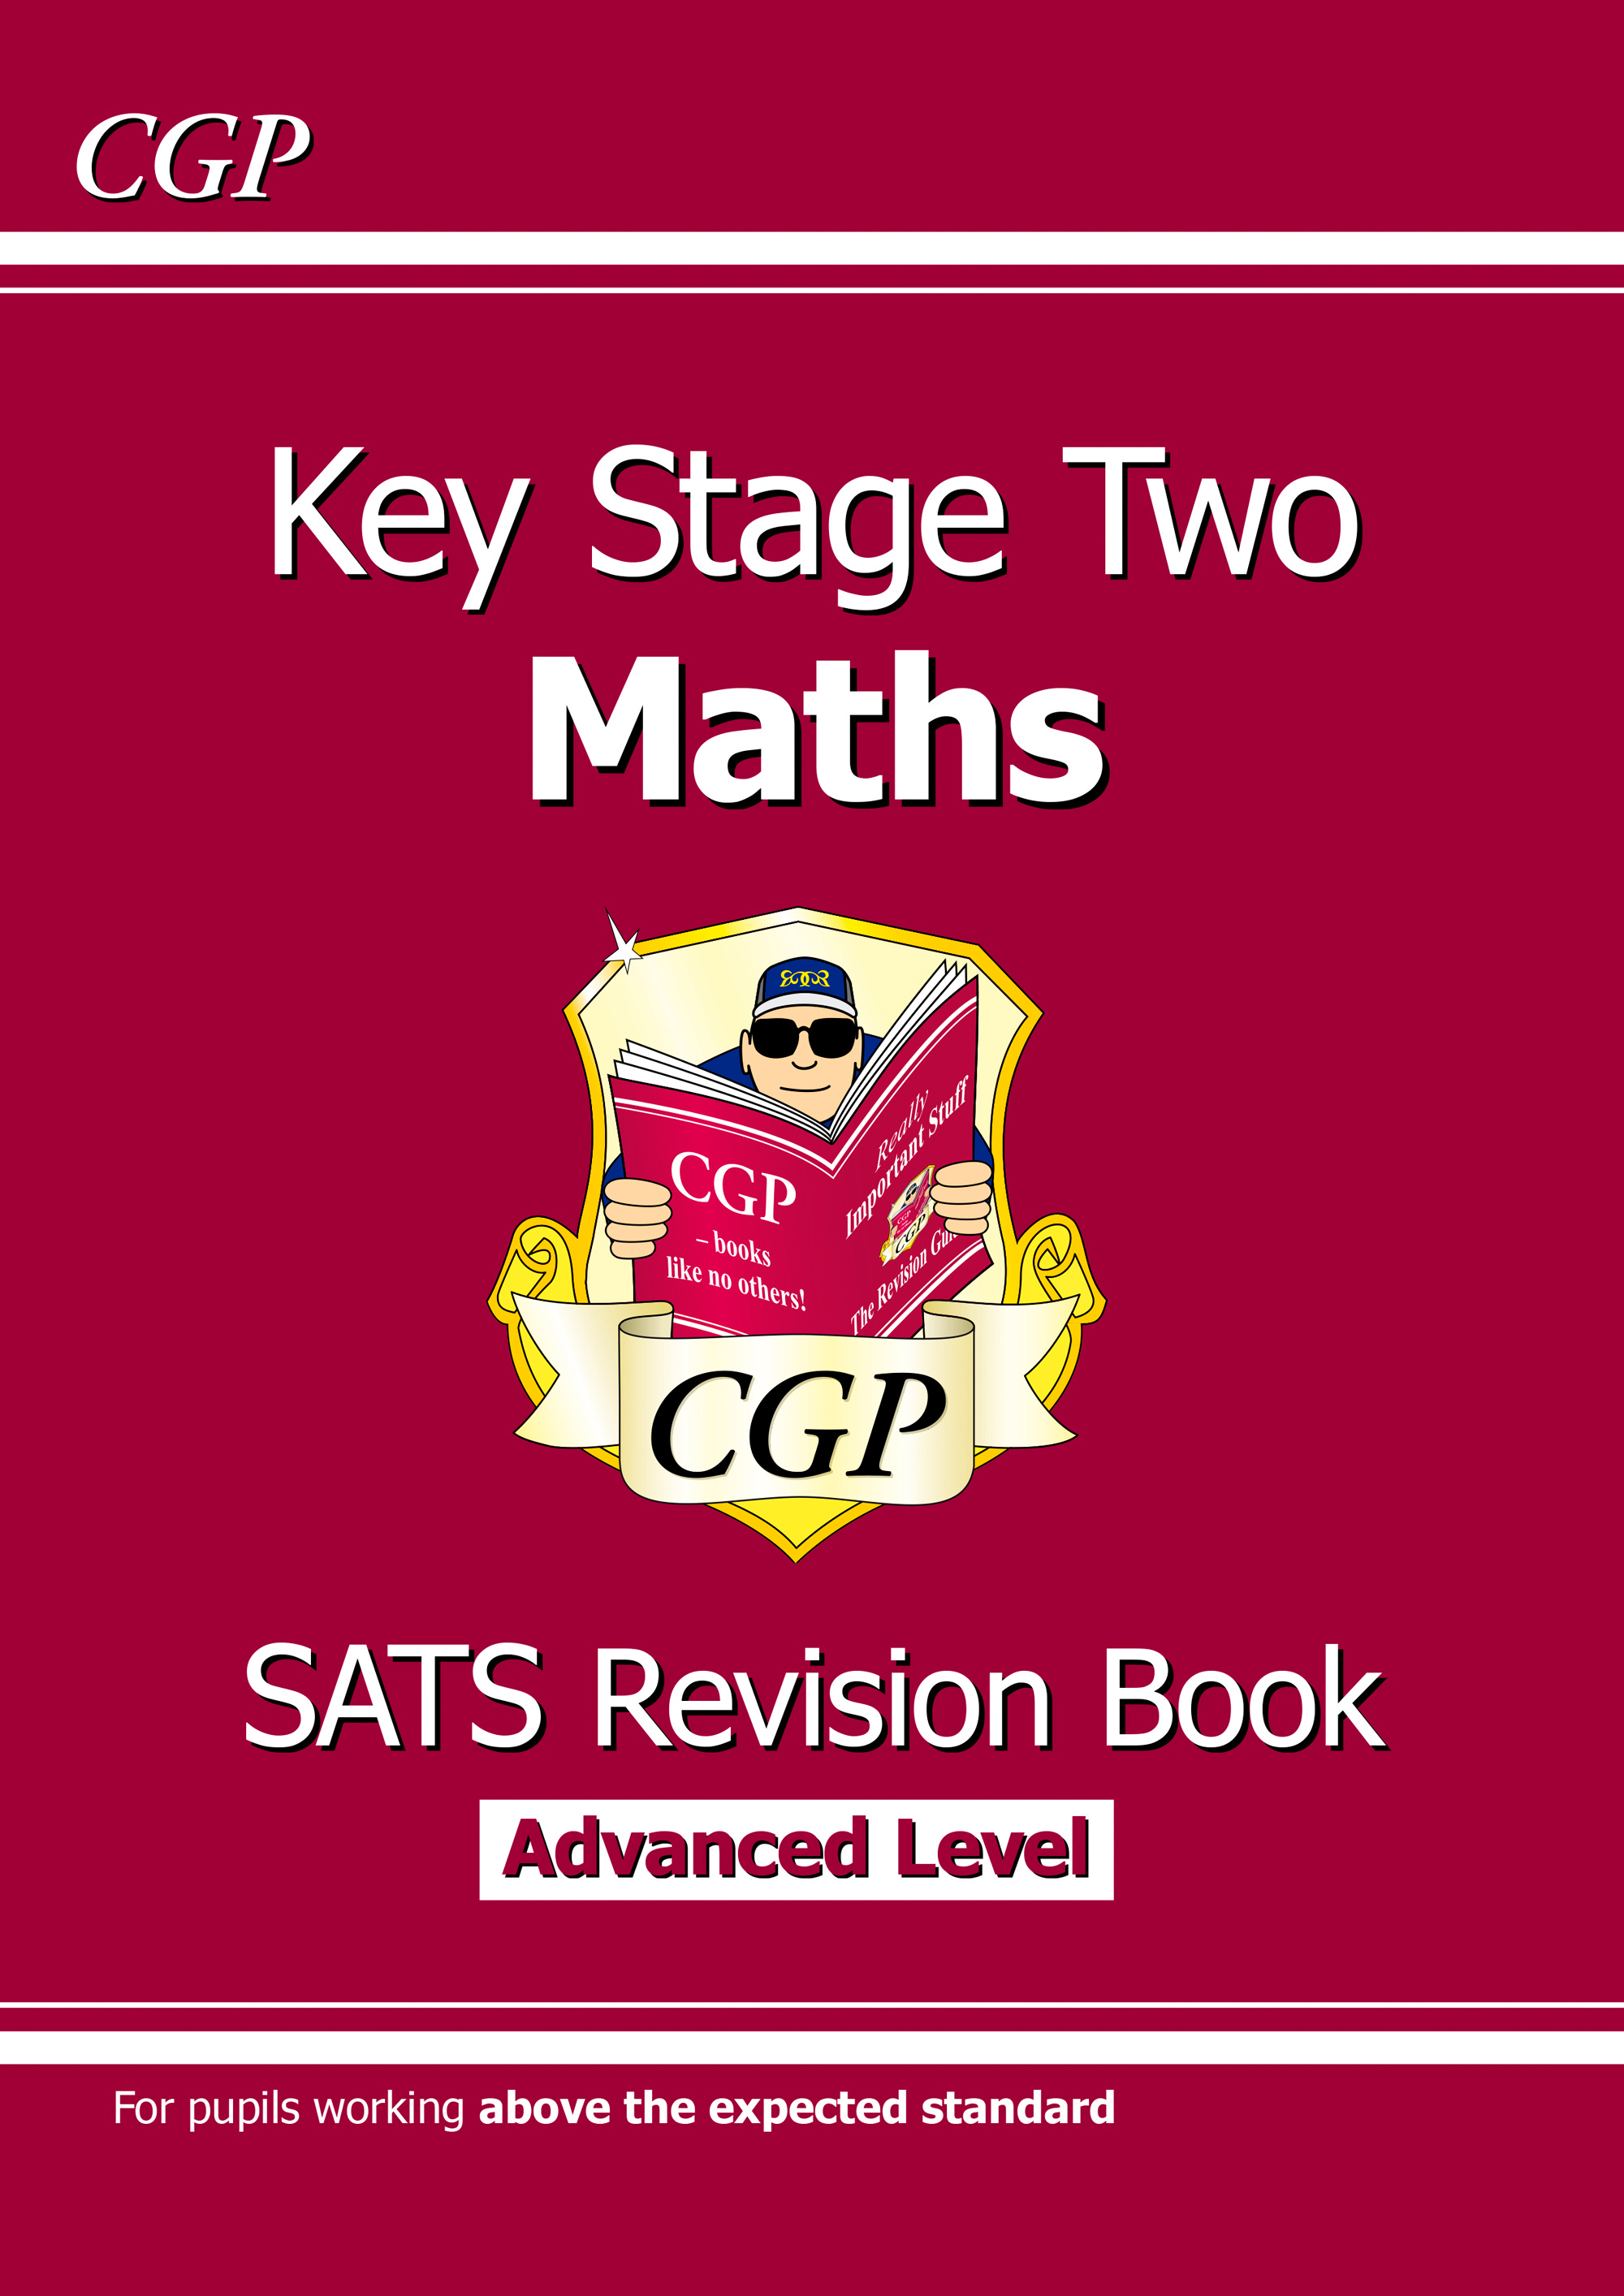 MLHR22DK - KS2 Maths Targeted SATs Revision Book - Advanced Level (for tests in 2018 and beyond)